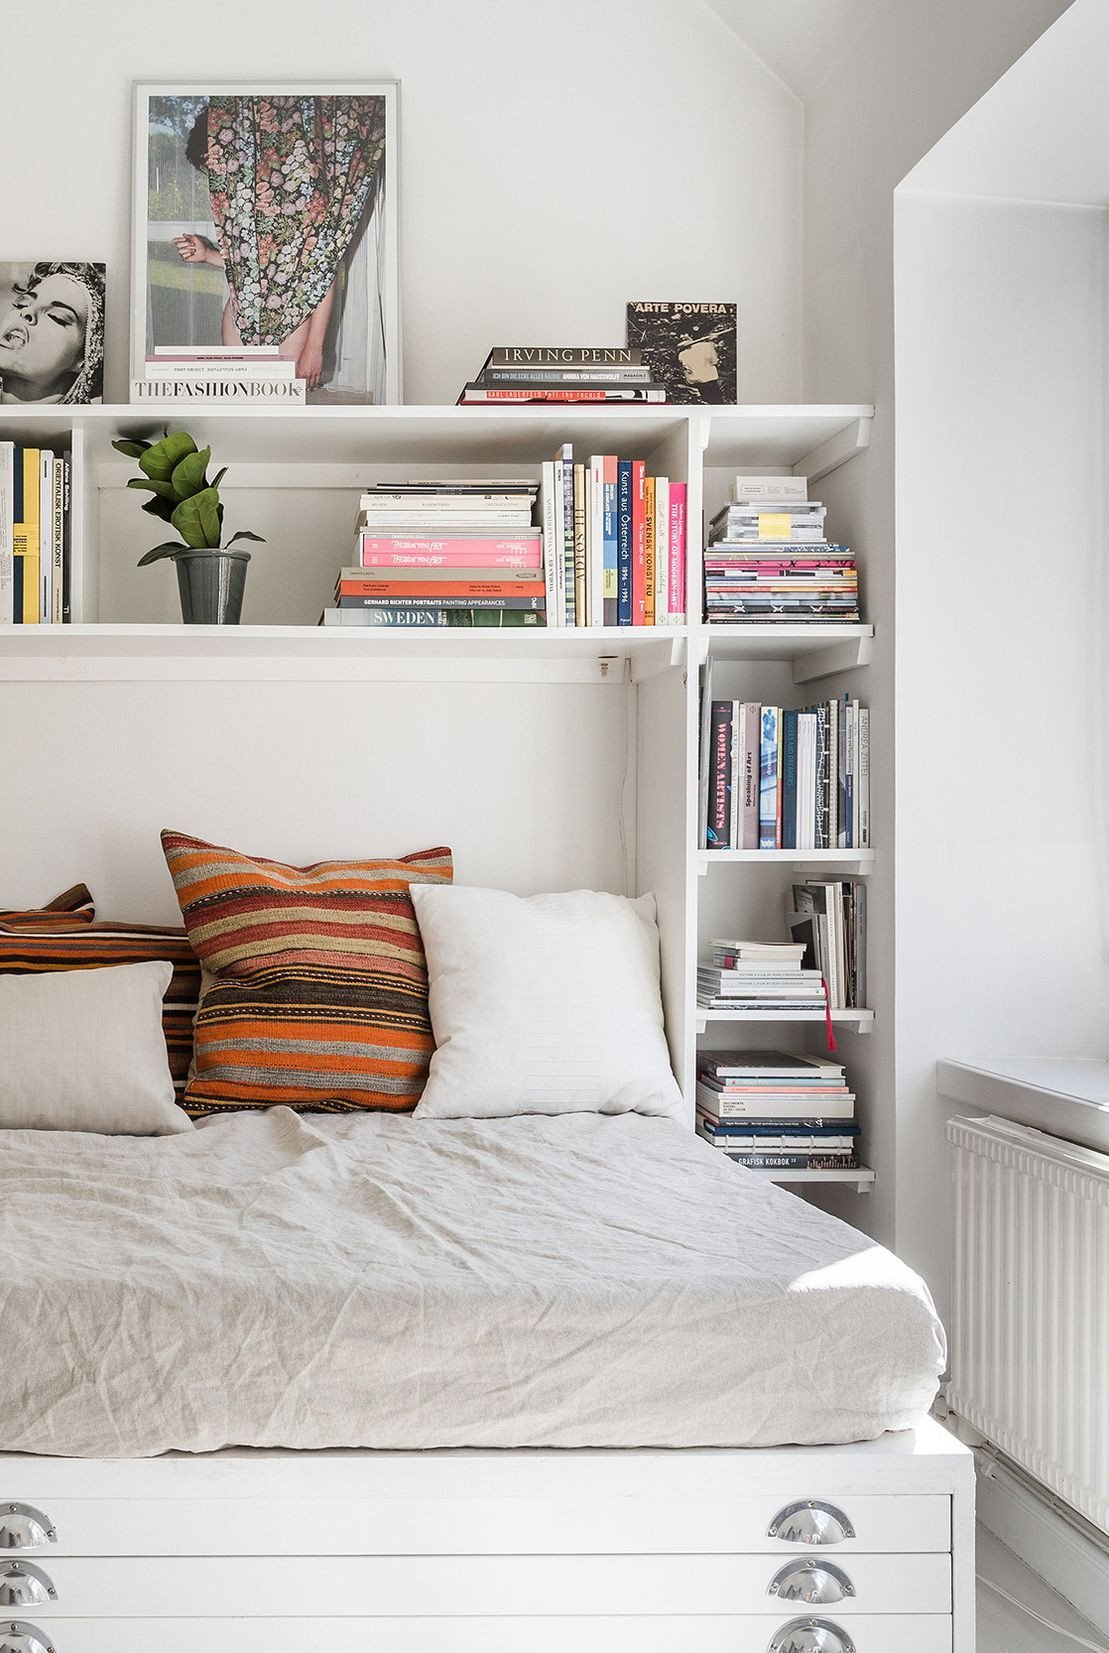 Bedroom Storage Ideas for Small Rooms Beautiful the Ingenious Trick that Makes even the Tiniest Studio